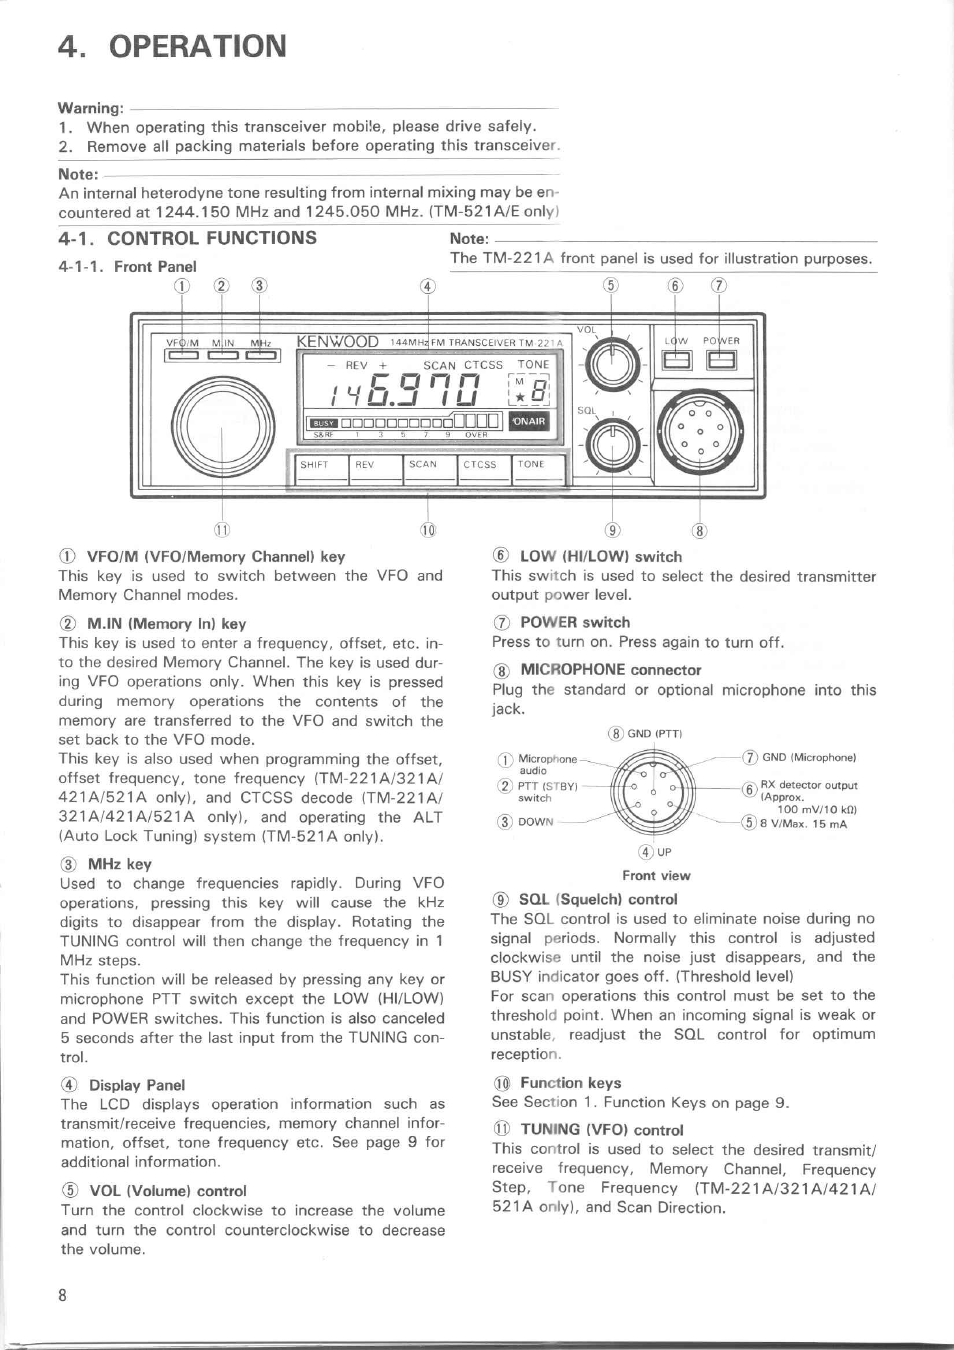 Operation, 1. control functions, Control functions | Kenwood TM-521E User  Manual